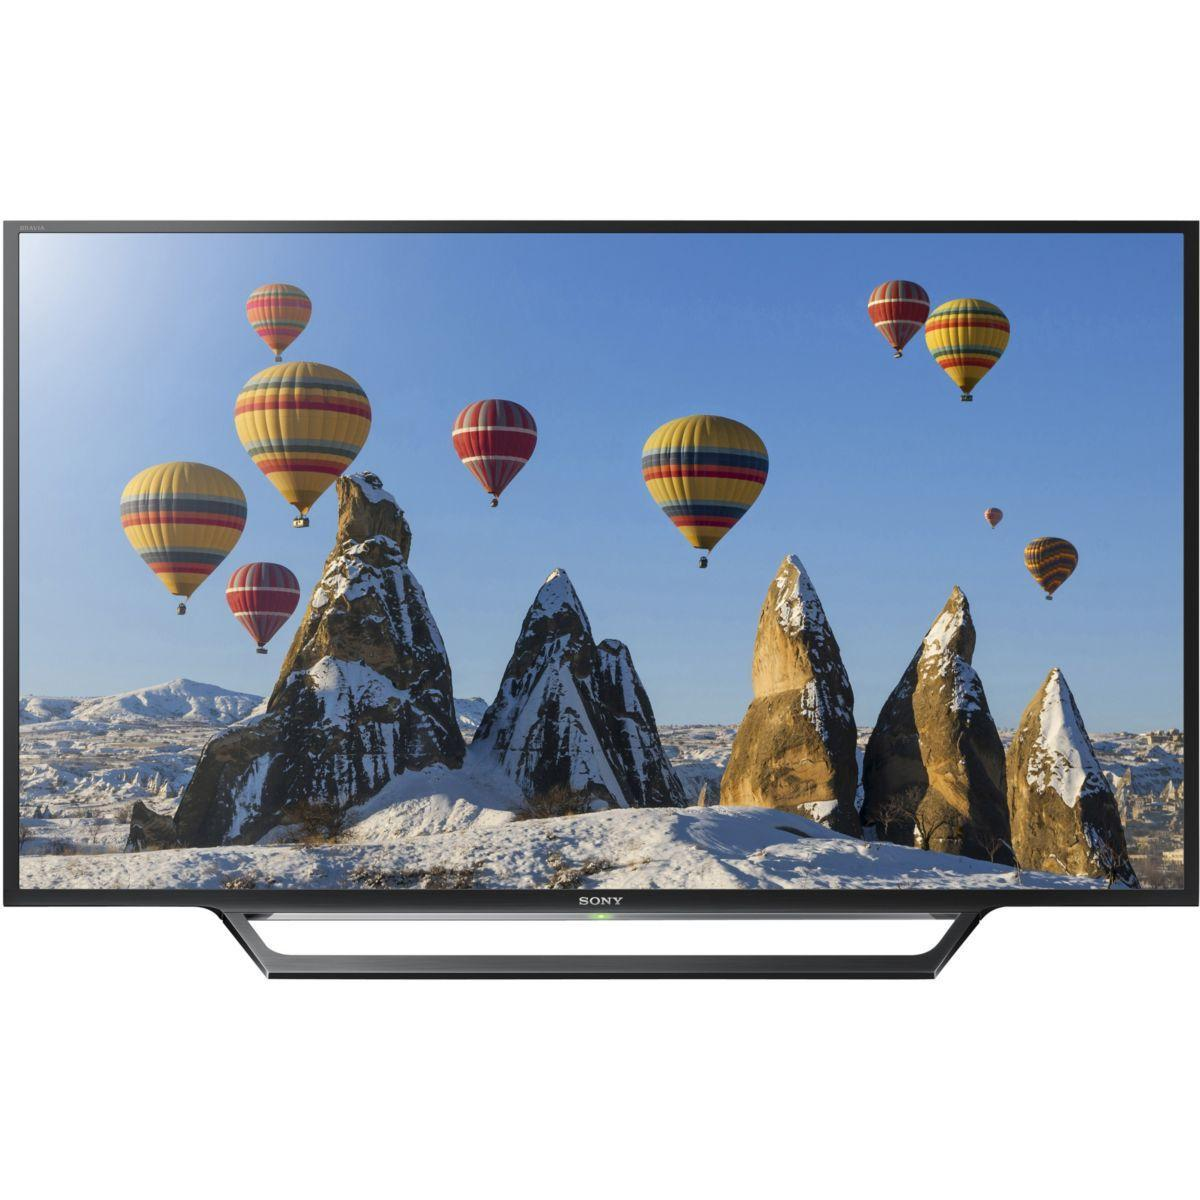 Pack promo tv sony kdl40wd650 200hz mxr smart tv + support tv valueline mural mouvement intégral 26 - 42 '' 20 kg (photo)